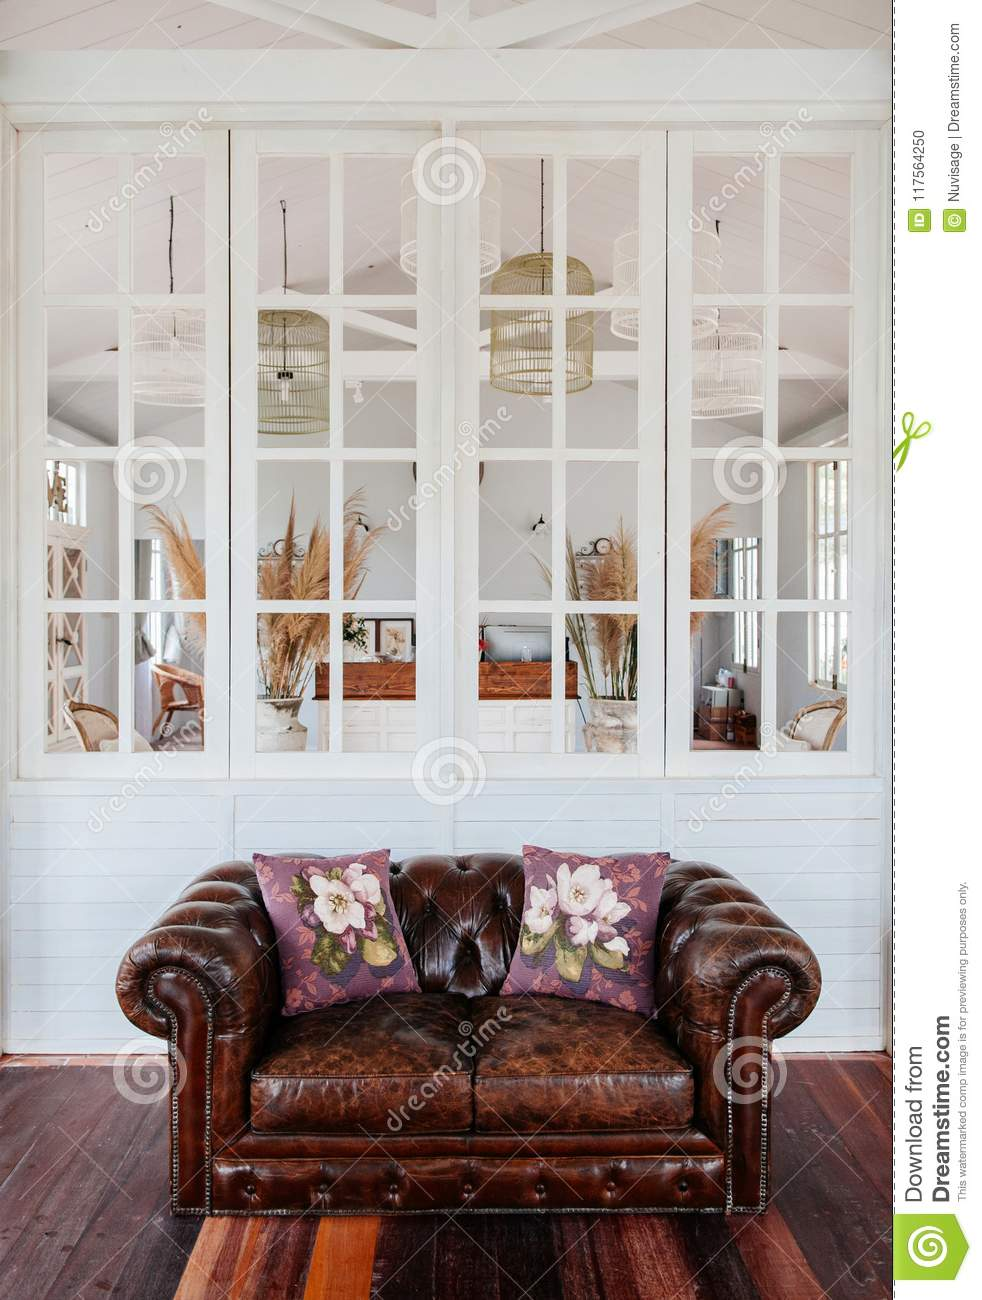 English Country Vintage Living Room Interior With Natural Light ...